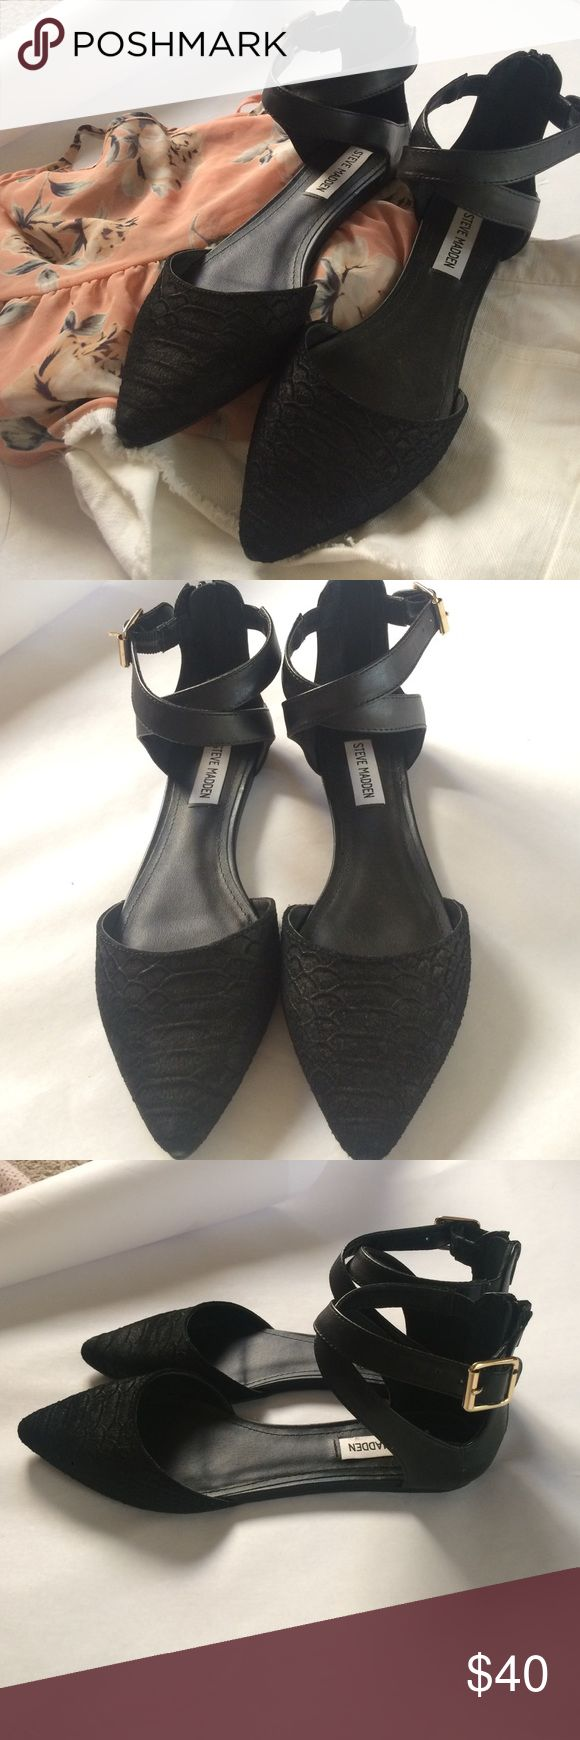 Steve Madden Pointy Criss Cross Flat Steve Madden flat with pointy toe and criss cross detail on the ankle straps. Gold hardware and zip up back. Never worn/brand new and in perfect condition with no flaws. Size 7.5 Steve Madden Shoes Flats & Loafers